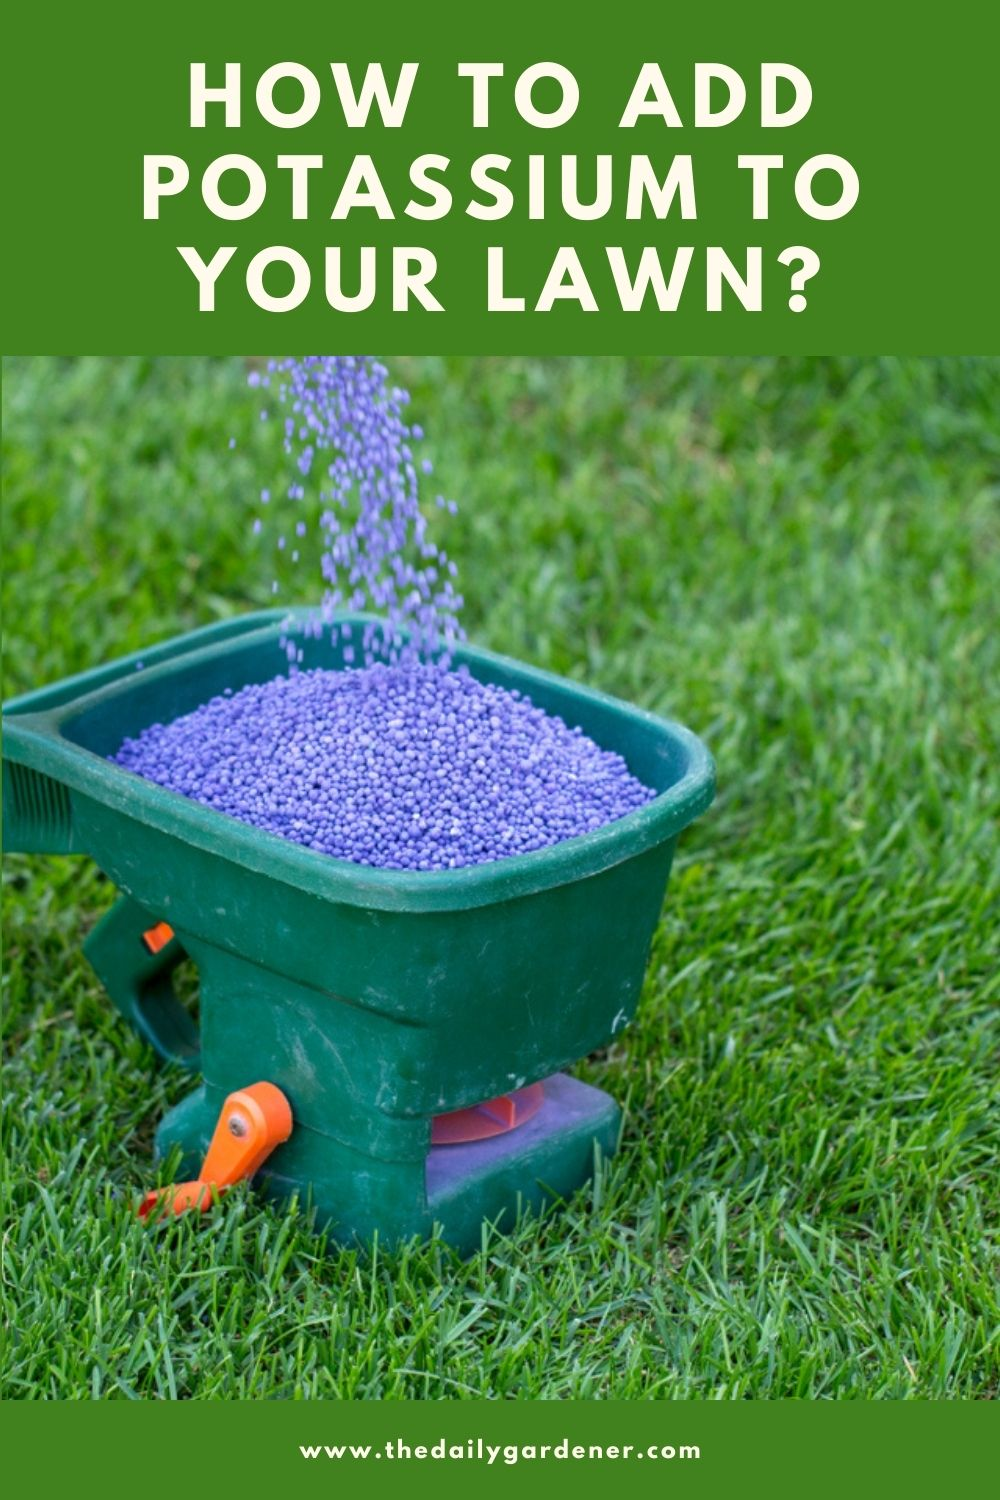 How to Add Potassium to Your Lawn 1